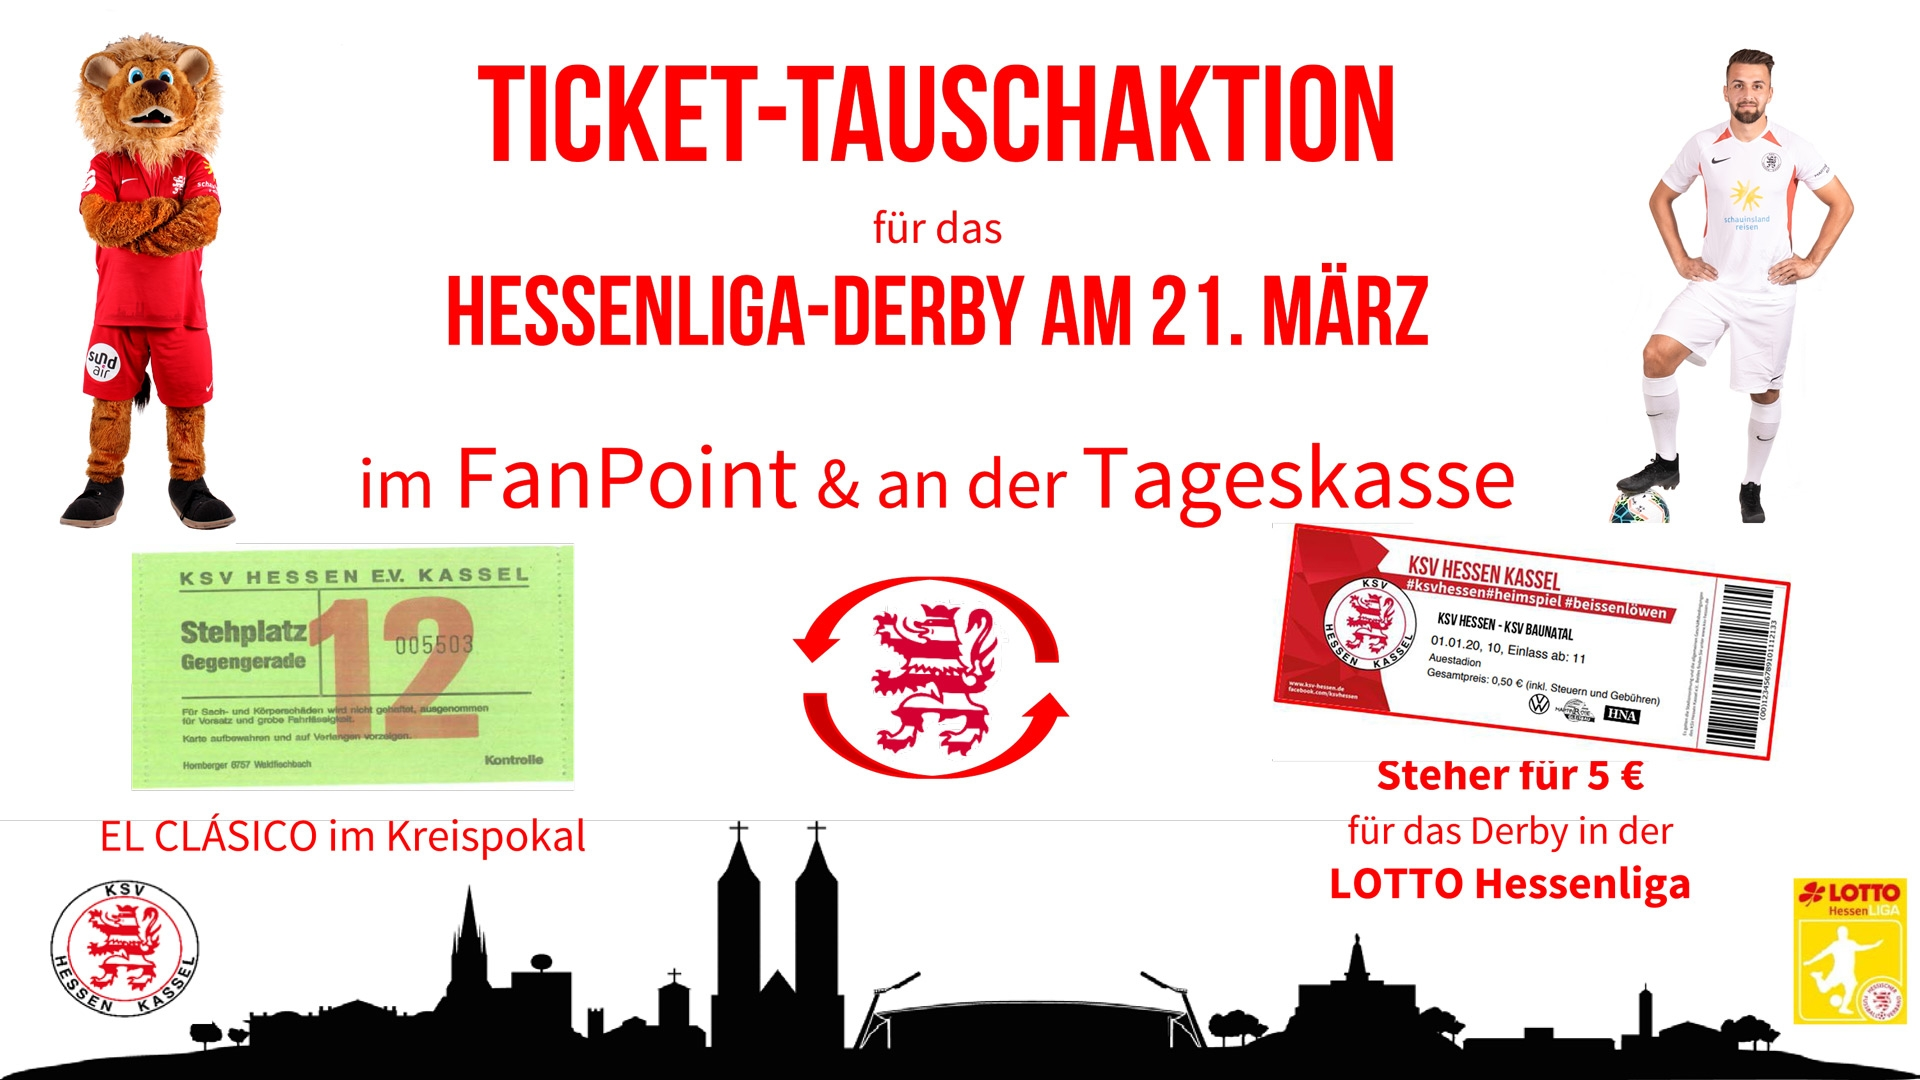 Tickettauschaktion